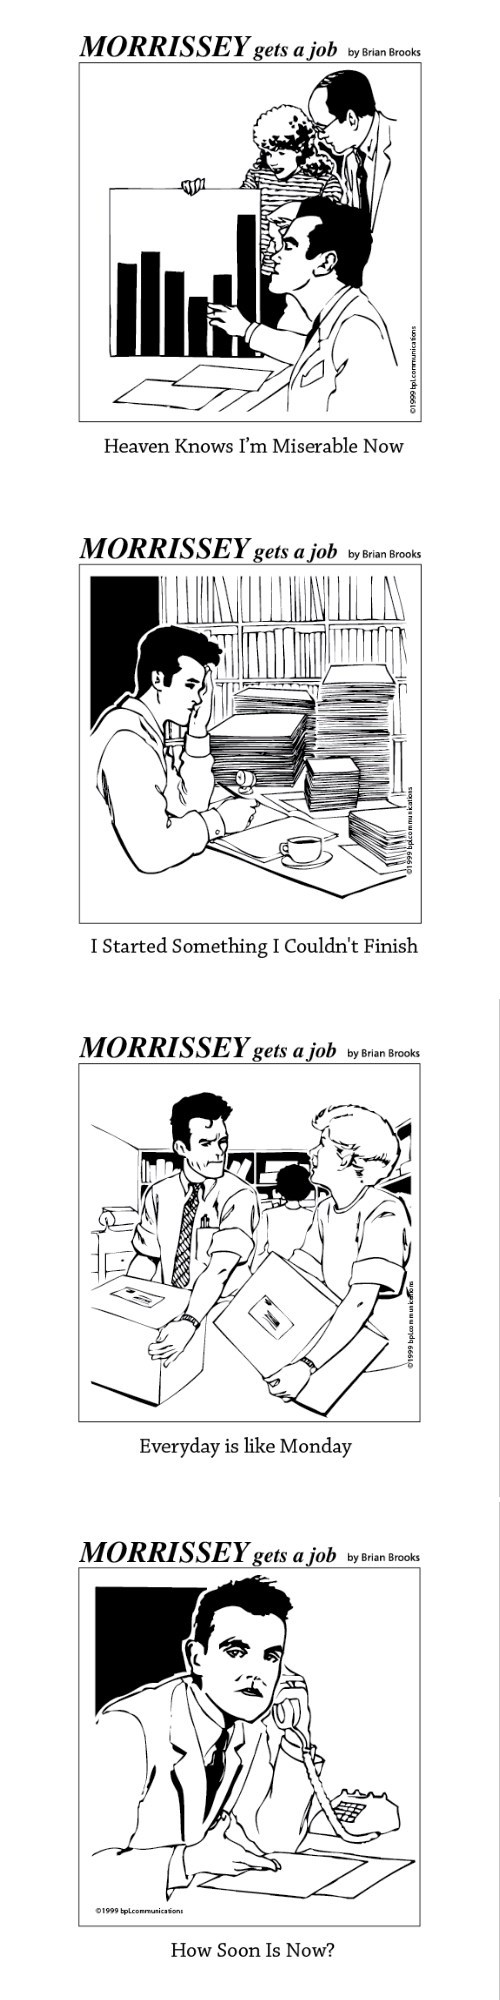 lyrics,morrisey,web comics,existential,monday thru friday,Music,g rated